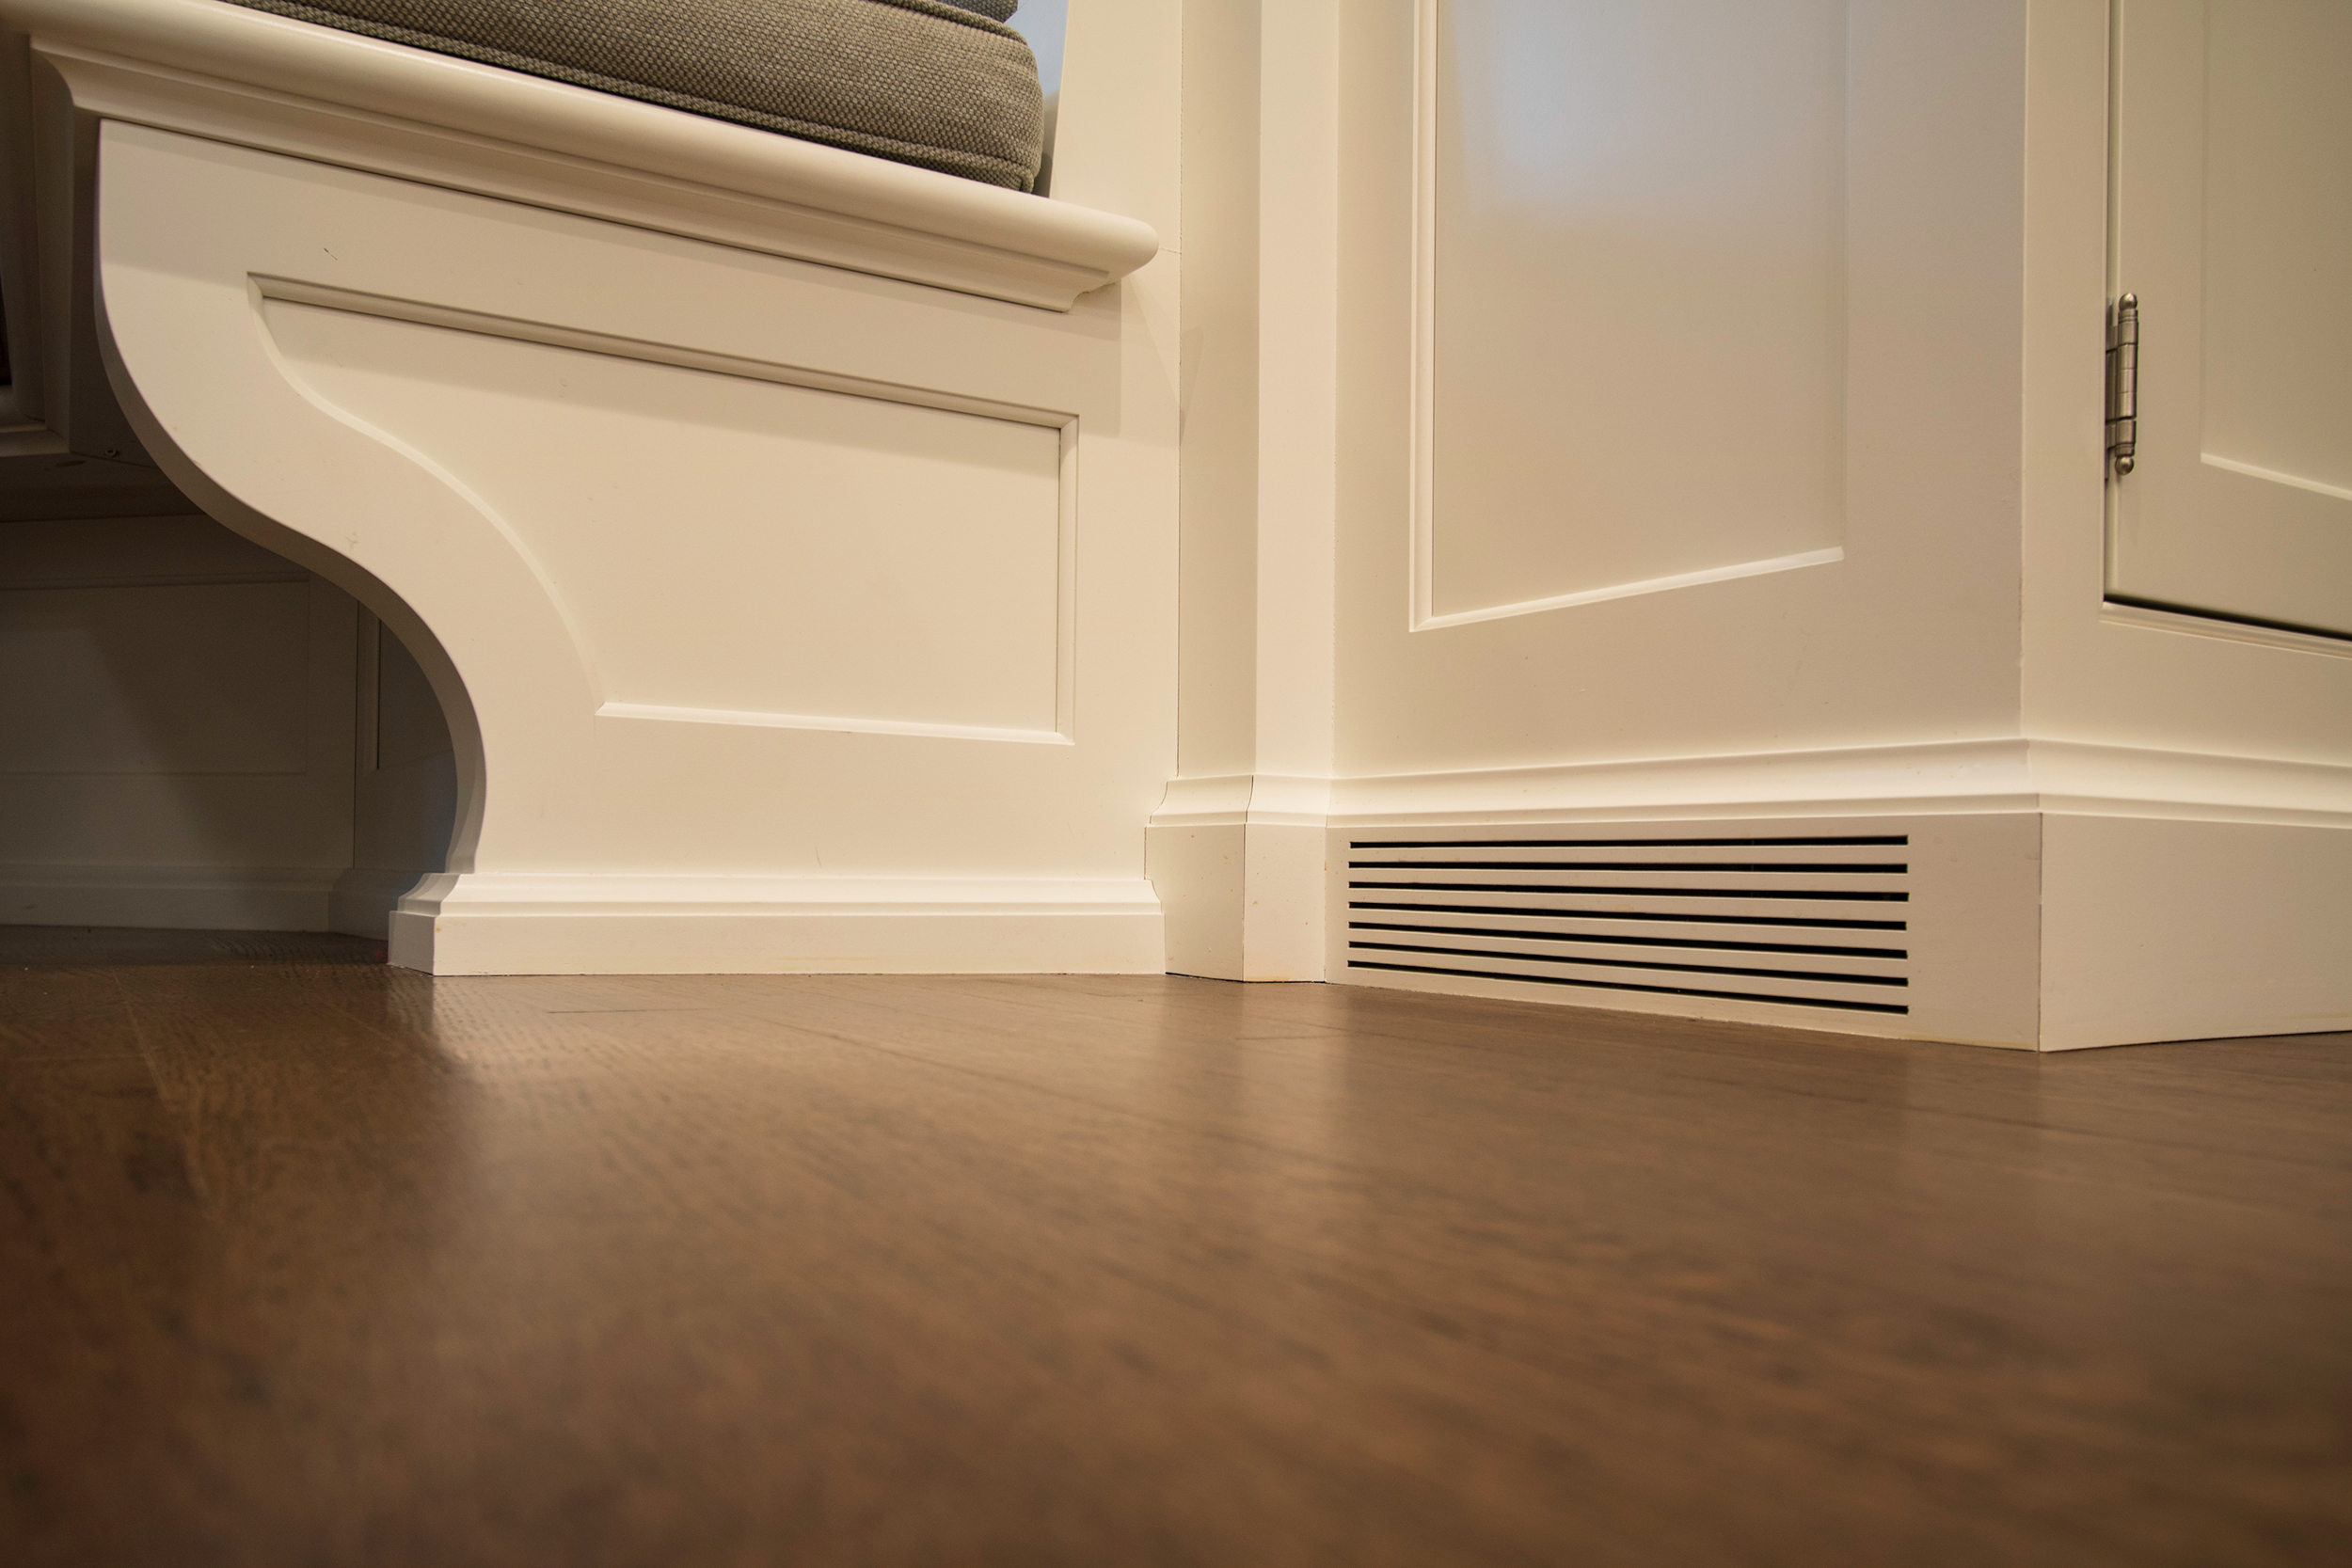 Integrated air return vent at base of cabinetry